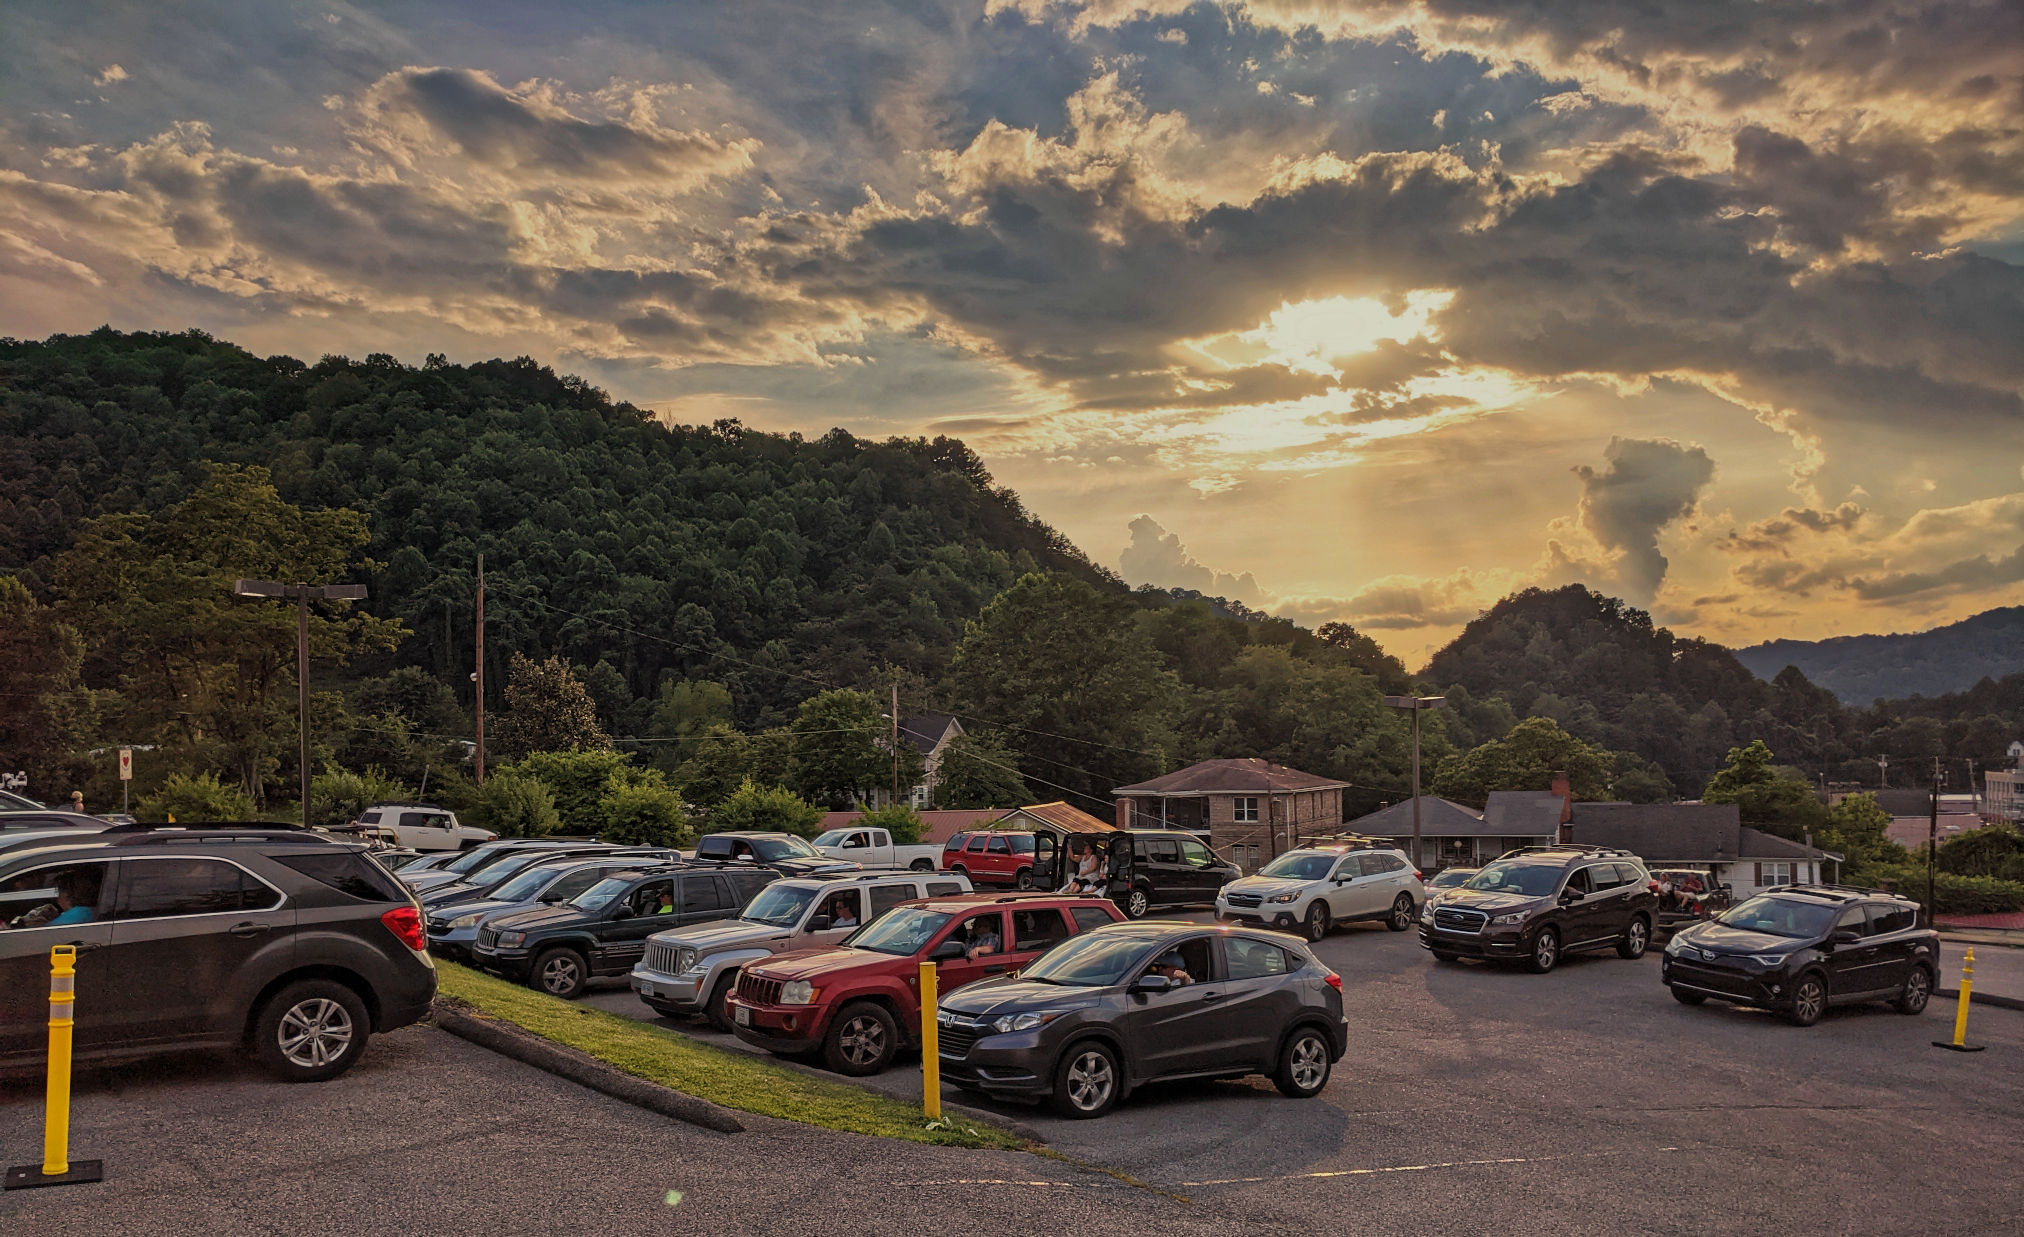 The scenery in downtown Whitesburg